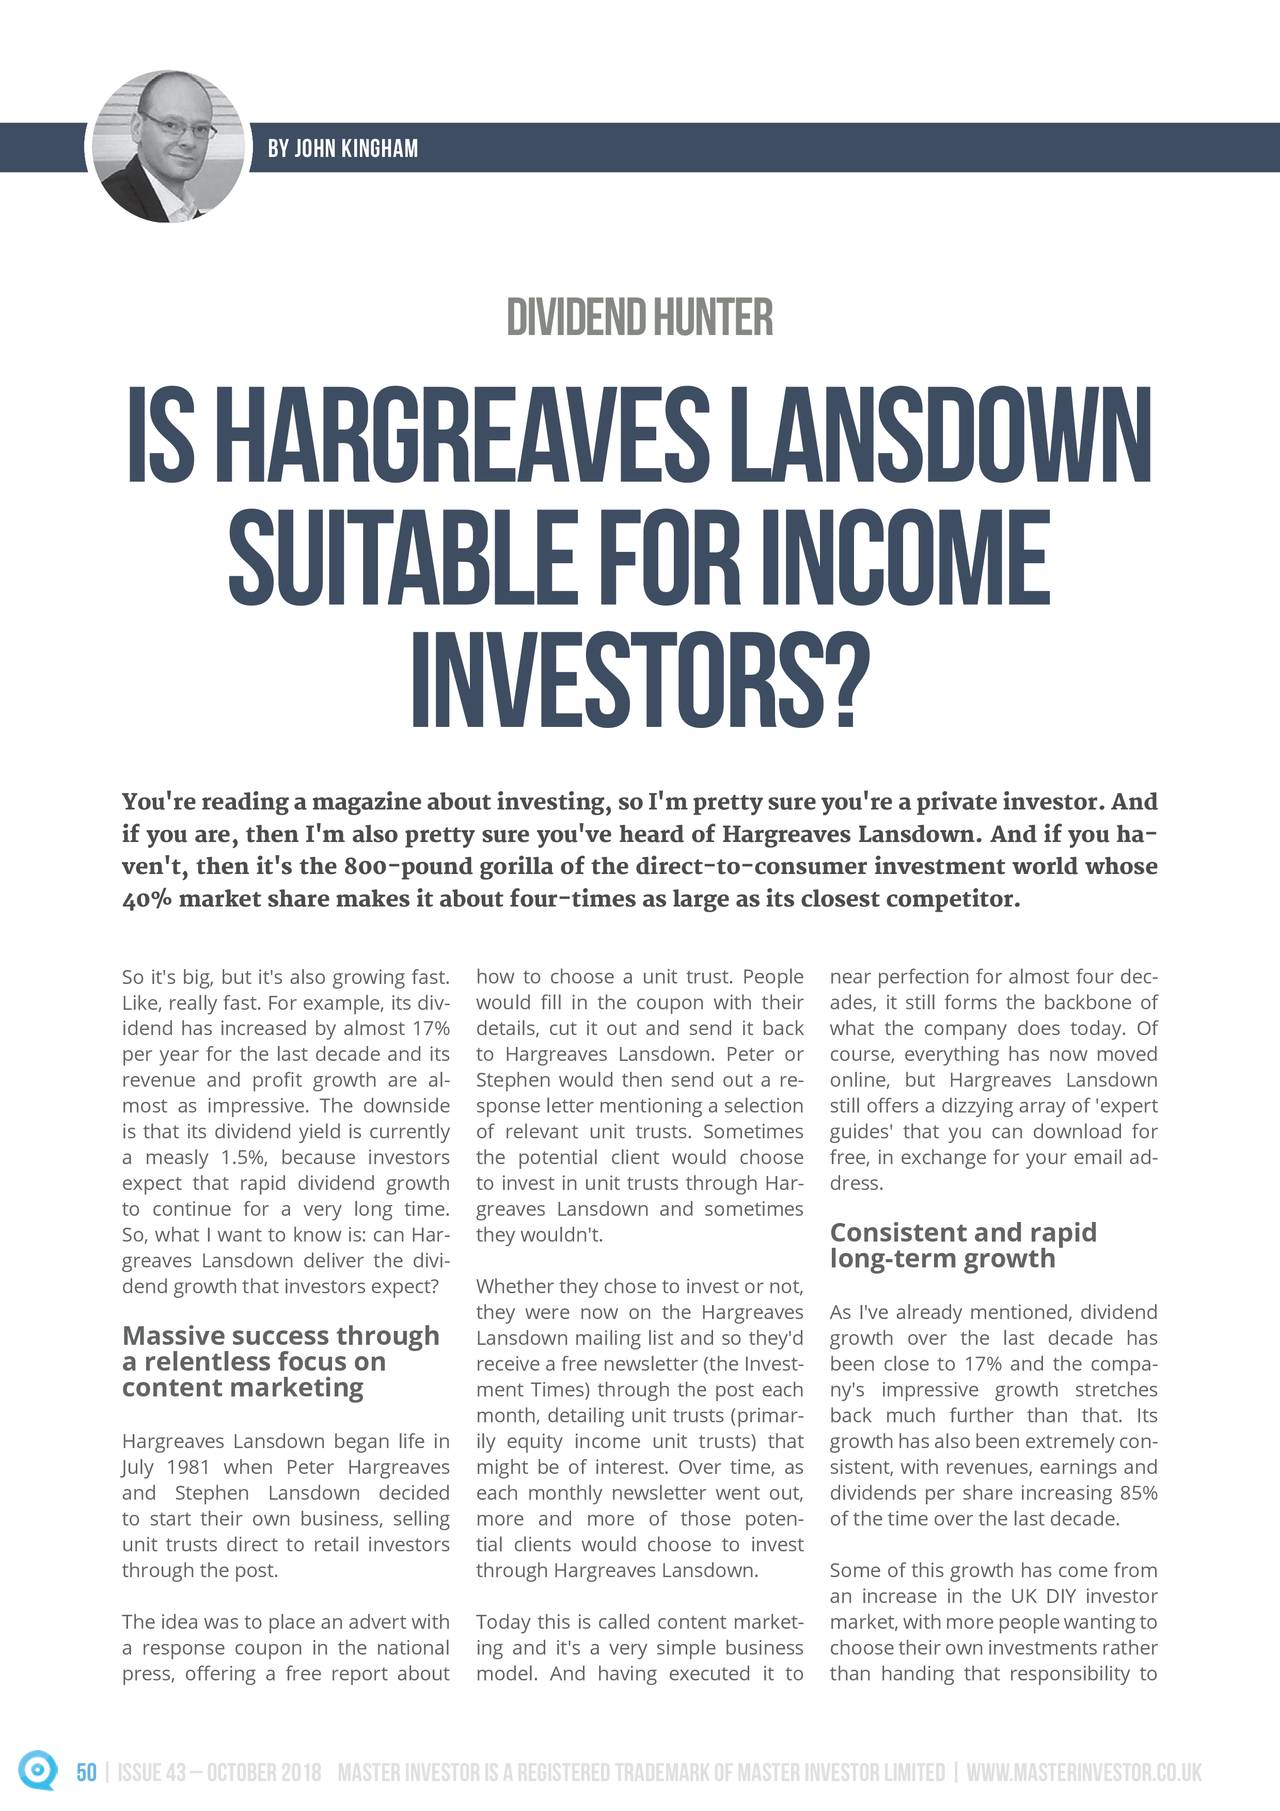 dividendhunter IsHargrea vesLansdown suit ableforincome investors? \rx*uh#uhdglqj#d#pdjd}lqh#derxw#lqyhvwlqj/#vr#L*p#suhww|#vxuh#|rx*uh#d#sulydwh#lqyhvwru1#Dqg# li#|rx#duh/#wkhq#L*p#dovr#suhww|#vxuh#|rx*yh#khdug#ri#Kdujuhdyhv#Odqvgrzq1#Dqg#li#|rx#kd- yhq*w/#wkhq#lw*v#wkh#;330srxqg#jrulood#ri#wkh#gluhfw0wr0frqvxphu#lqyhvwphqw#zruog#zkrvh# 40% market share makes it about four-times as large as its closest competitor. So it's big, but it's also growing fast.ose a unit trust. Peopler perfection for almost four dec- Like, really fast. For example, its div-▯ LQ▯ WKH▯ FRXSRQ▯ ZLWK▯ WKHLU▯till forms the backbone of idend has increased by almost 17%ails, cut it out and send it backthe company does today. Of per year for the last decade and itsgreaves Lansdown. Peter orourse, everything has now moved UHYHQXH▯ DQG▯ SURȴW▯ JURZWK▯ DUH▯ DO- would then send out a re-line, but Hargreaves Lansdown most as impressive. The downsideonse letter mentioning a selection▯R HUV▯D▯GL]]\LQJ▯DUUD\▯RI▯ H[SHUW▯ is that its dividend yield is currentlynt unit trusts. Sometimesdes' that you can download for a measly 1.5%, because investorse potential client would chooseee, in exchange for your email ad- expect that rapid dividend growthinvest in unit trusts through Har- to continue for a very long time.aves Lansdown and sometimes So, what I want to know is: can Har-ouldn't. Consistent and rapid greaves Lansdown deliver the divi- long-term growth dend growth that investors expect?her they chose to invest or not, they were now on the HargreavesAs I've already mentioned, dividend Massive success through Lansdown mailing list and so thgrowth over the last decade has a relentless focus on receive a free newsletter (the been close to 17% and the compa- content marketing ment Times) through the post eany's impressive growth stretches month, detailing unit trusts (pback much further than that. Its Hargreaves Lansdown began life in equity income unit trusts) growth has also been extremely con- -XO\▯ ▯▯▯▯▯ Z